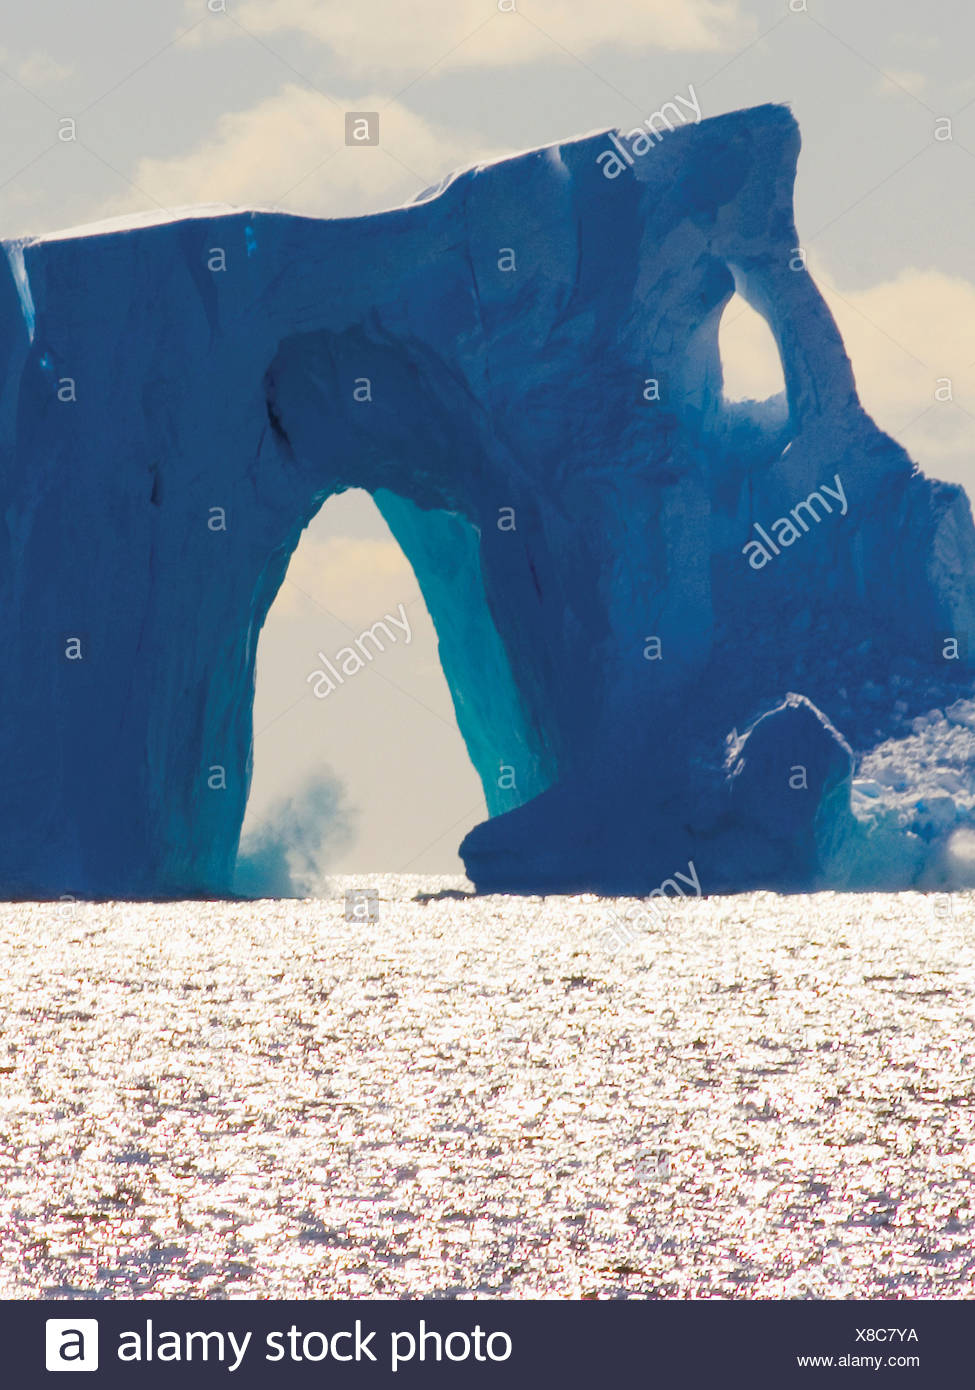 Arches Formed in an Immense Tabular Iceberg - Stock Image